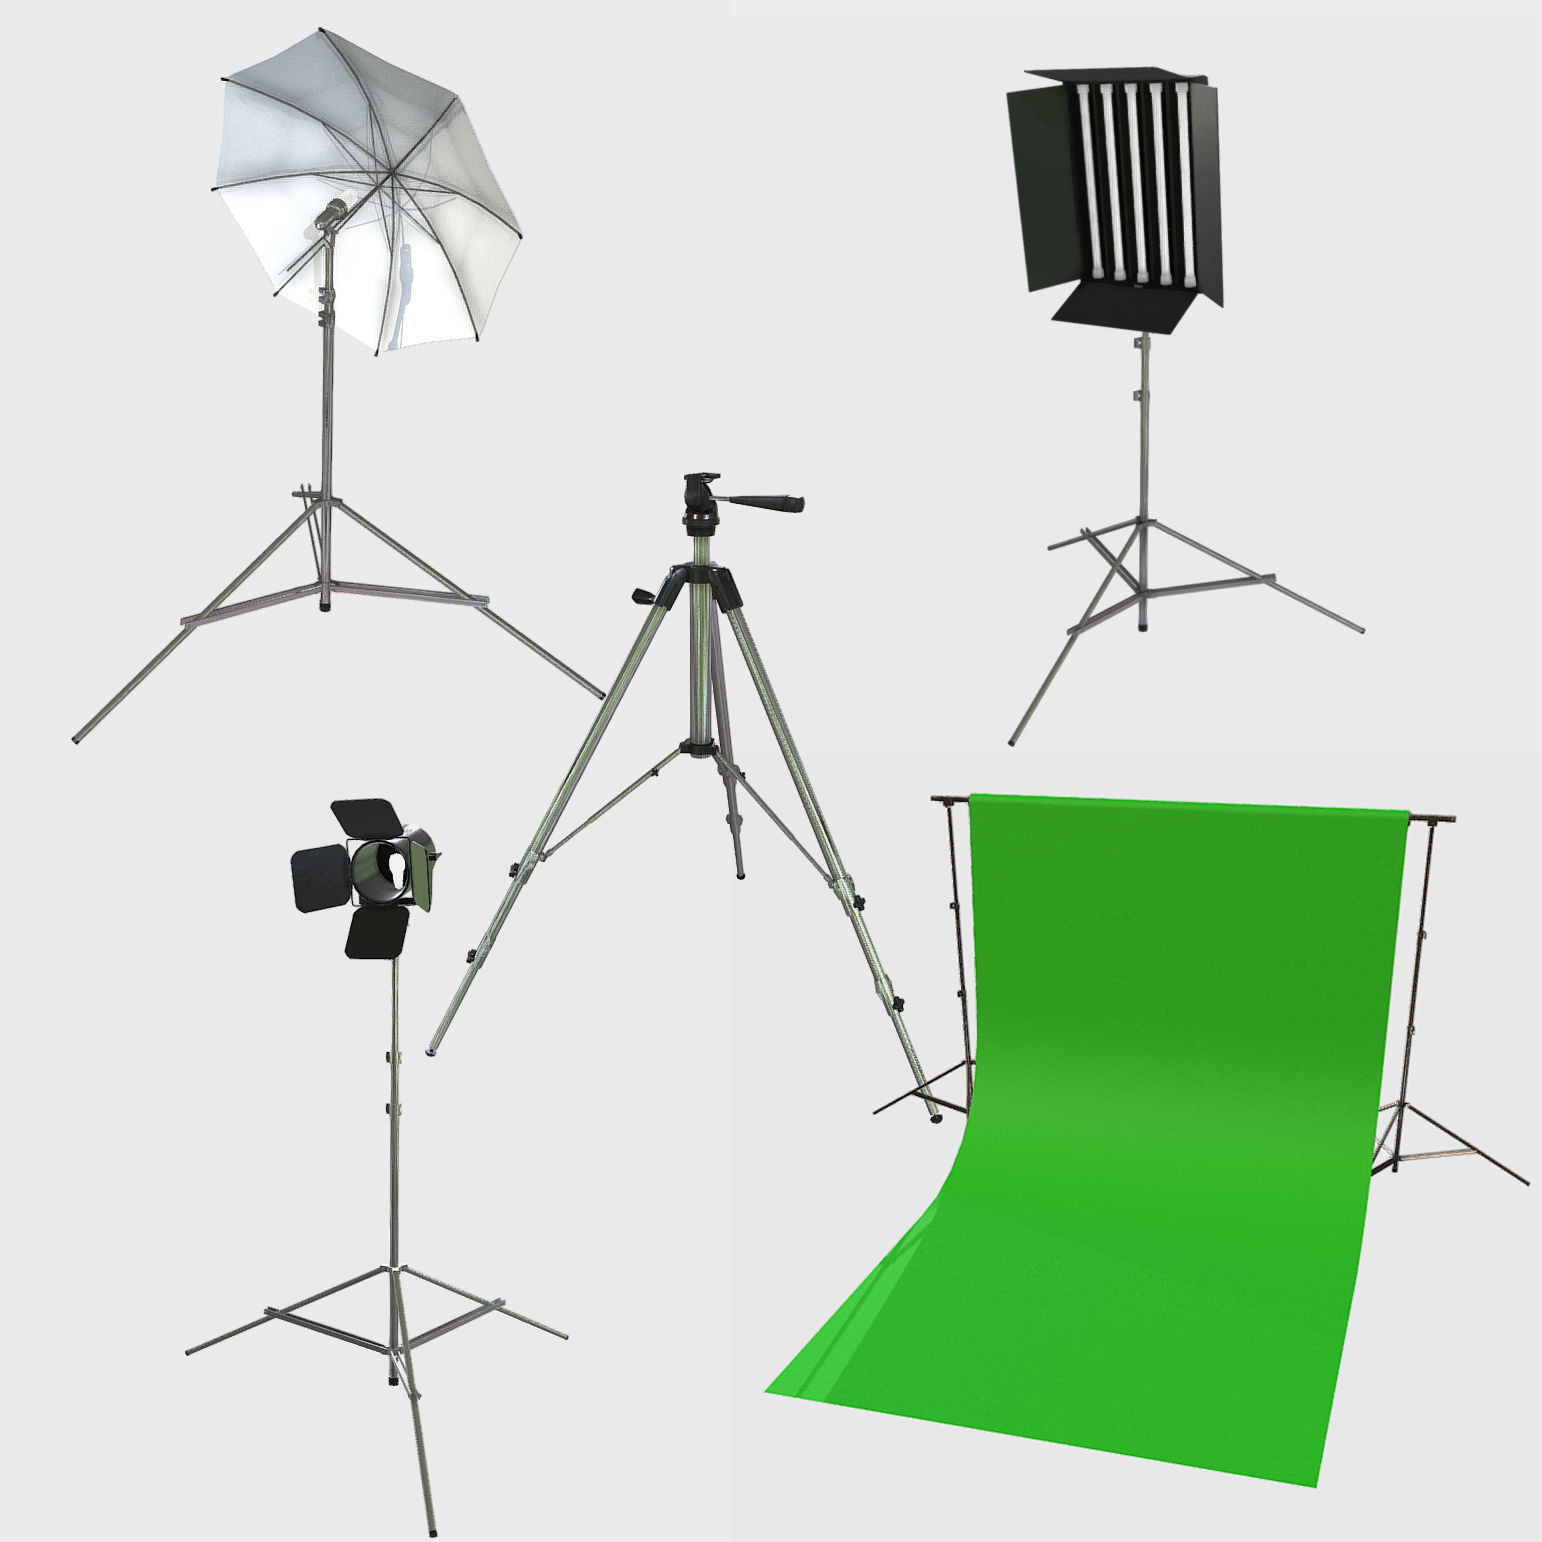 Collection of Low Poly PBR Studio Camera Props